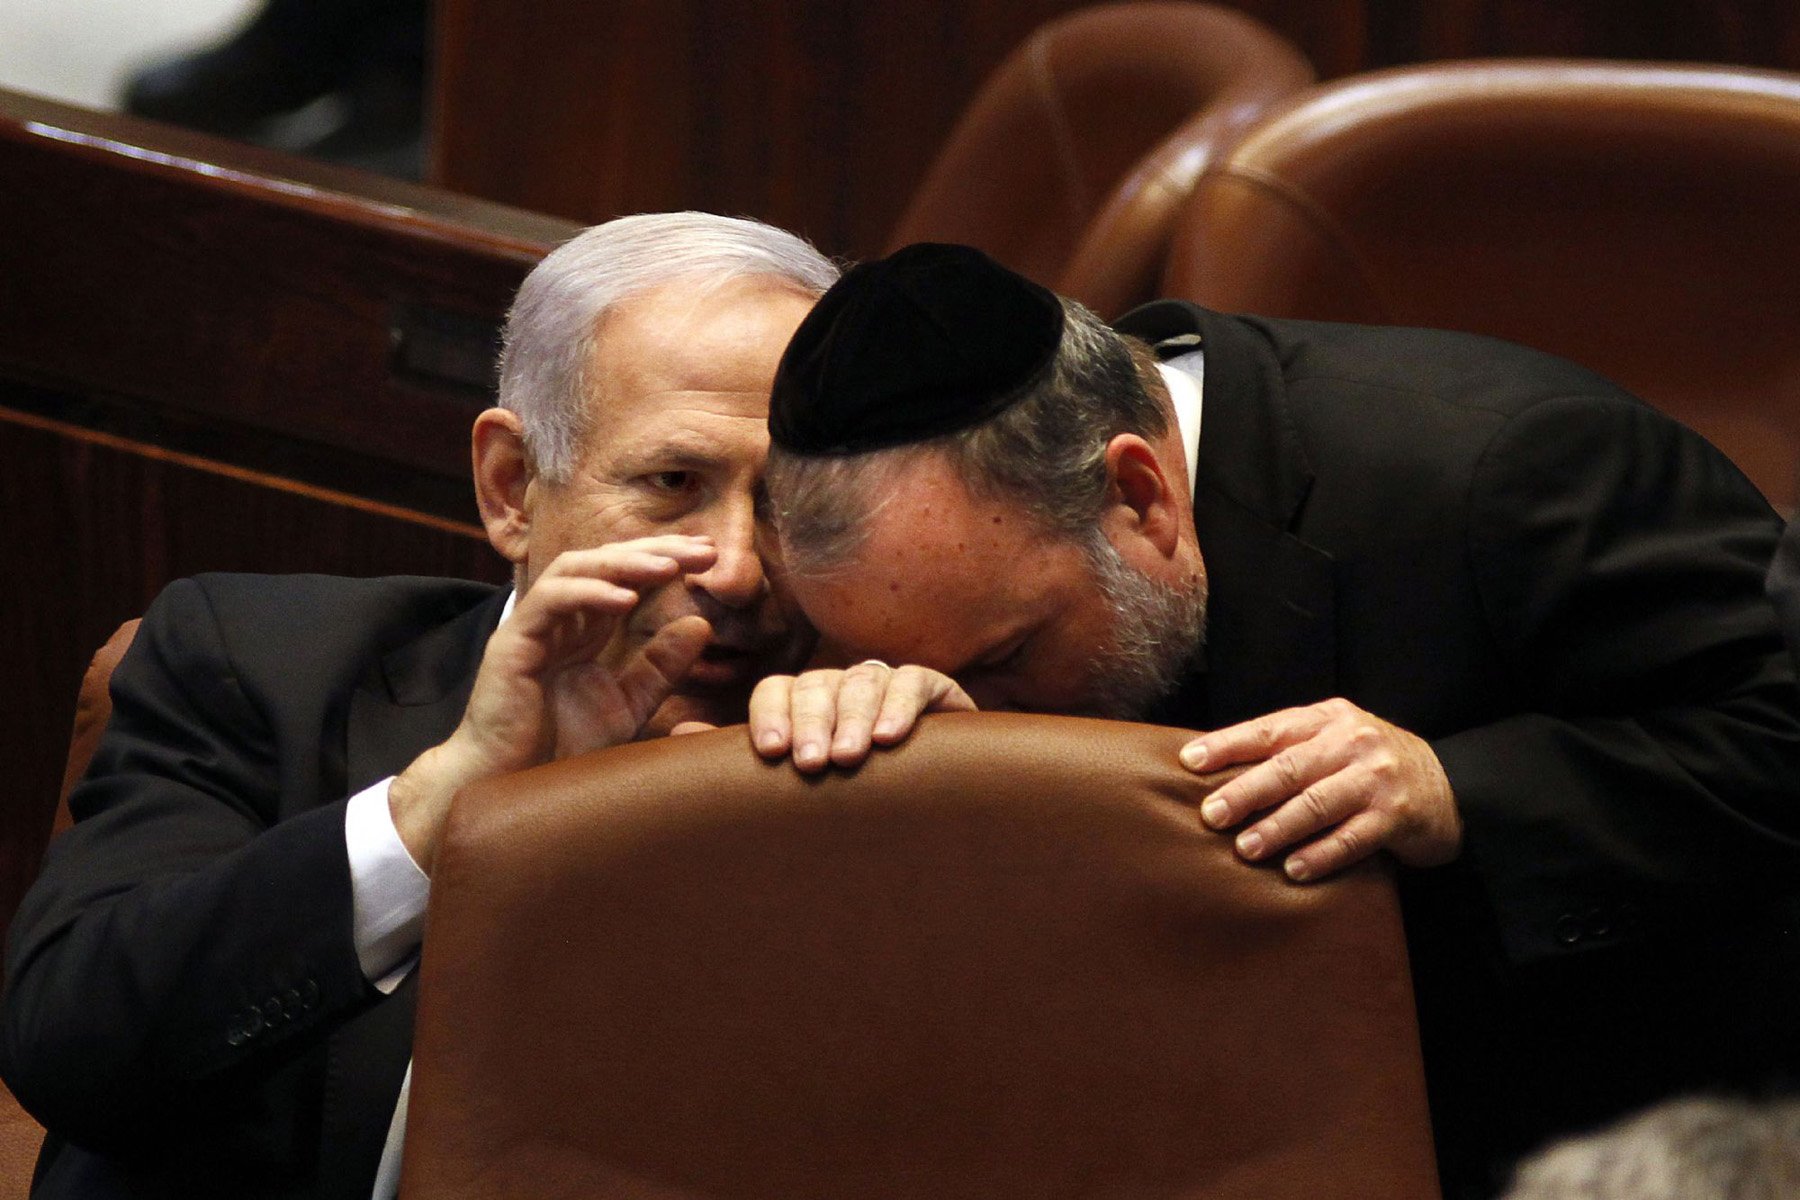 Israeli Prime Minister Binyamin Netanyahu (L) chats with an unidentified  ultra-Orthodox Member of the Knesset during a special session in Jerusalem. (AFP)